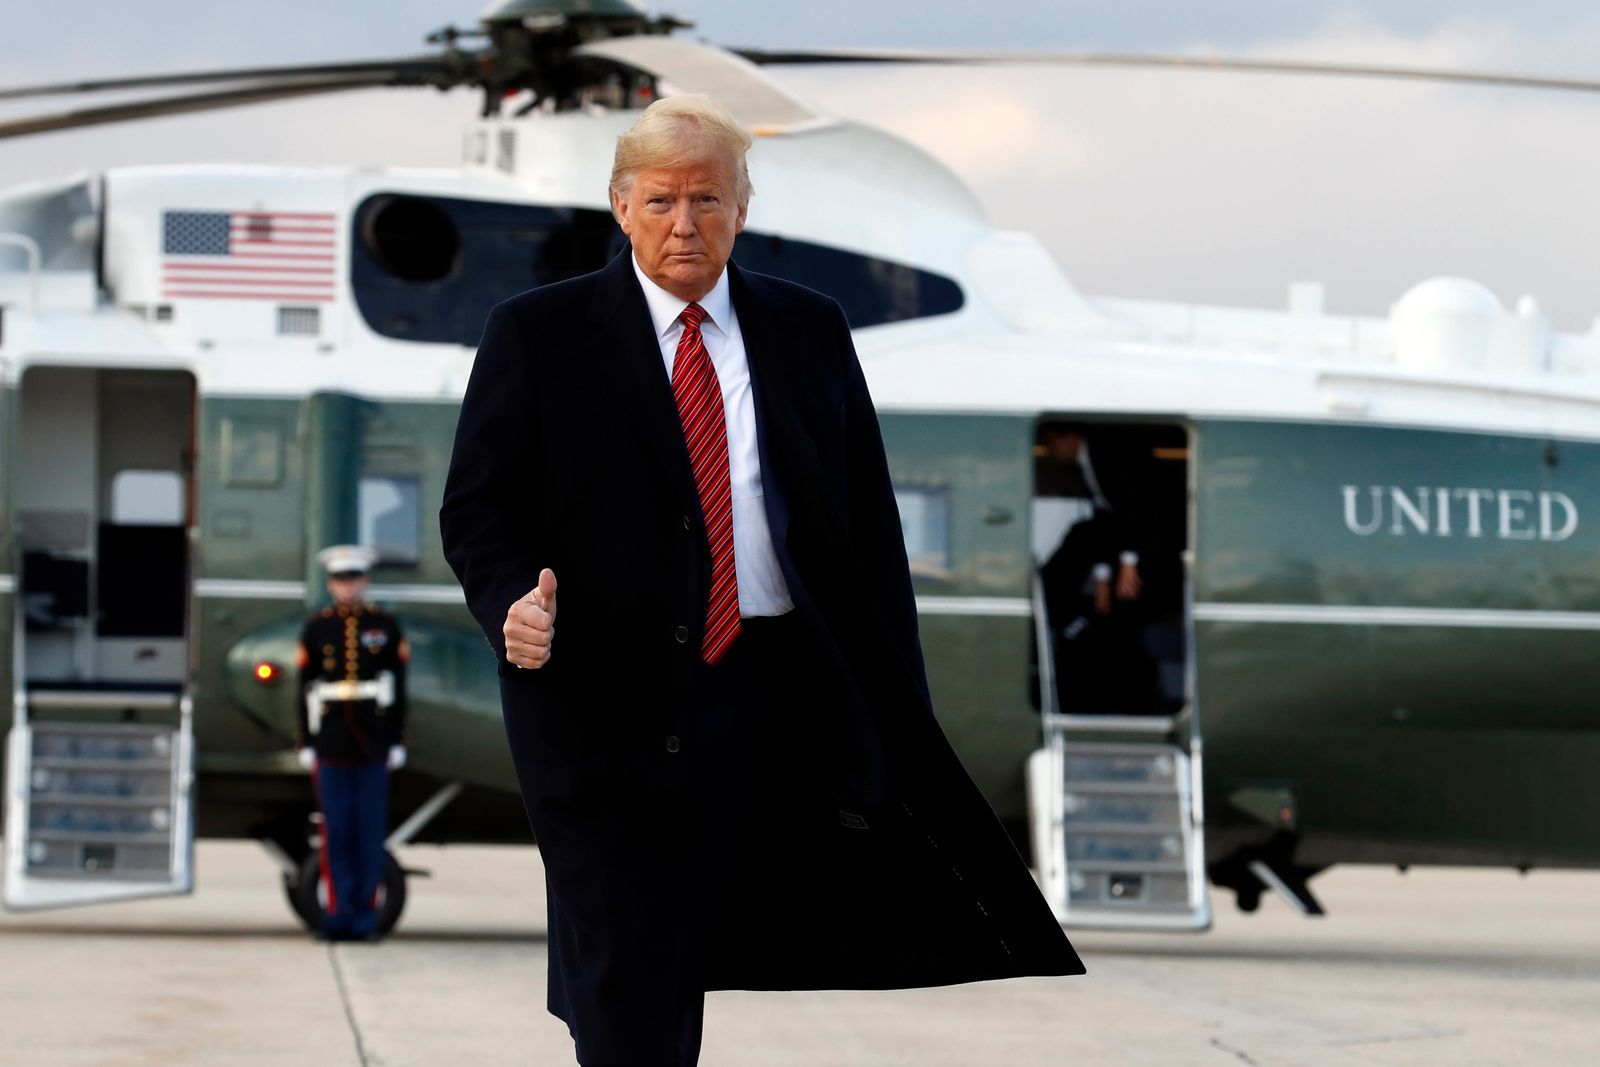 President Donald Trump boards Air Force One from Andrews Air Force Base, Md., Friday Feb. 28, 2020, en route to North Charleston, S.C., for a campaign rally. (AP Photo/Jacquelyn Martin)